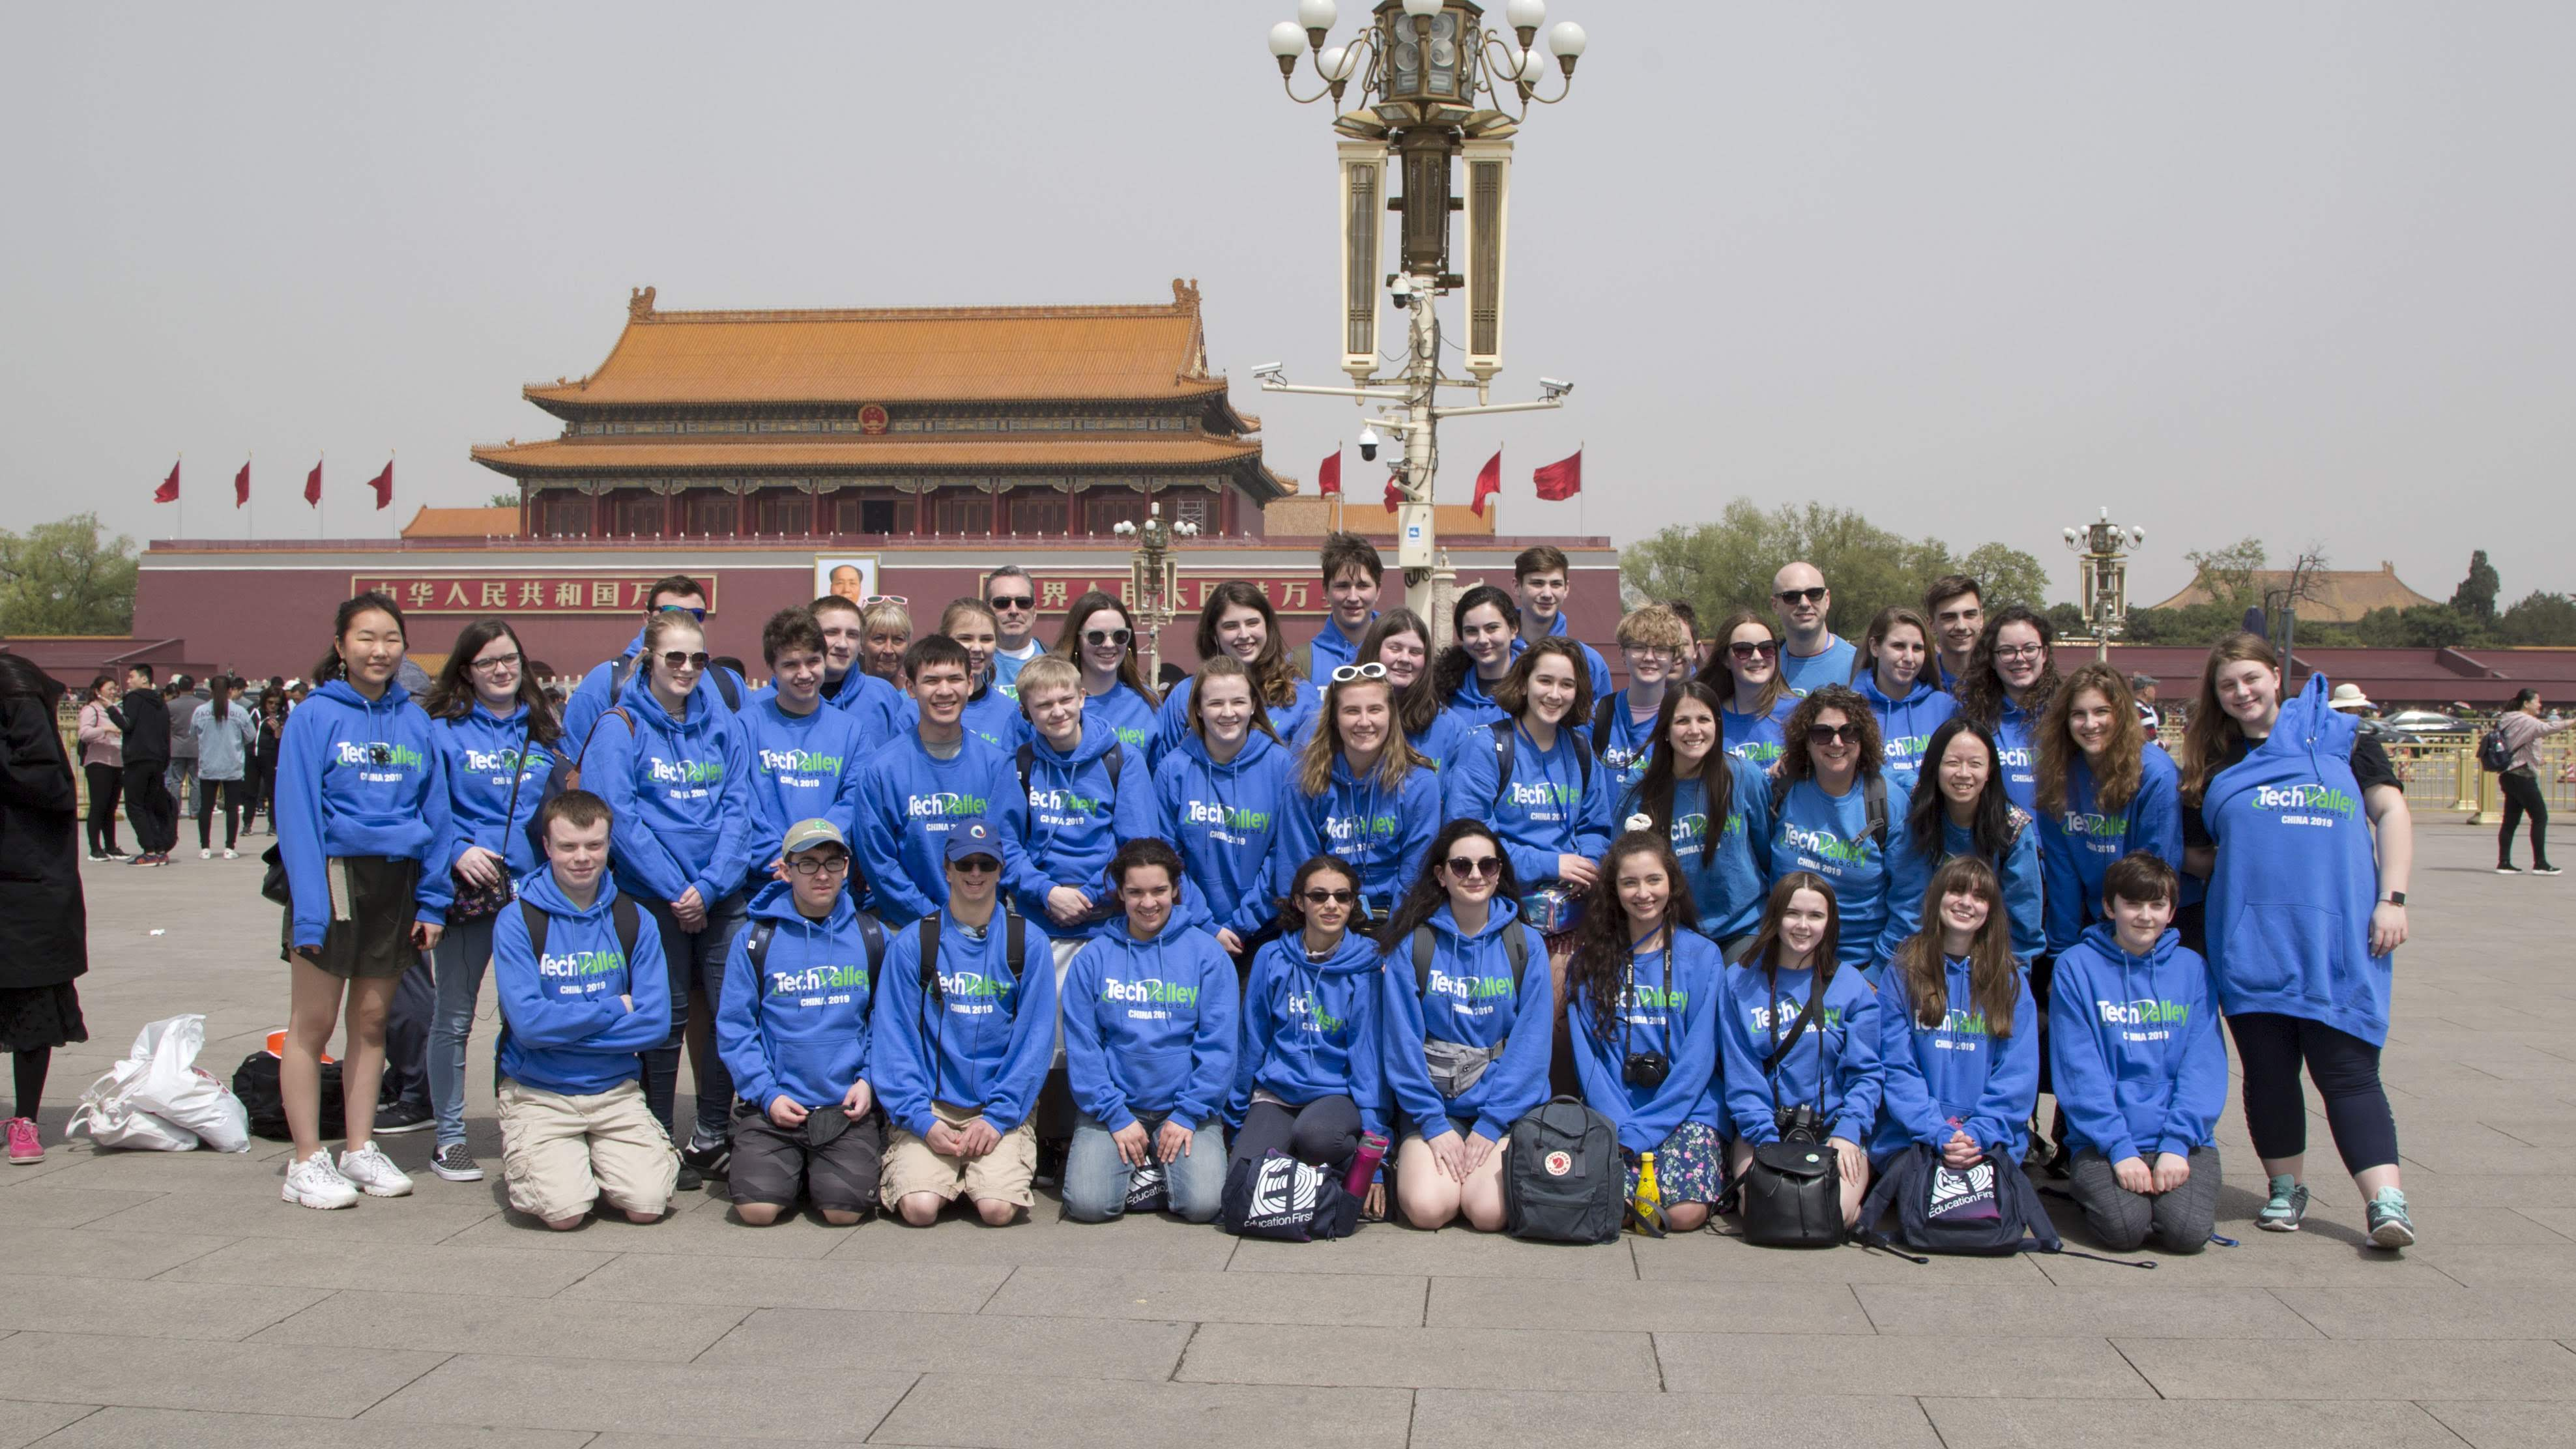 Group photo of TVHS staff and students outside the forbidden city in China